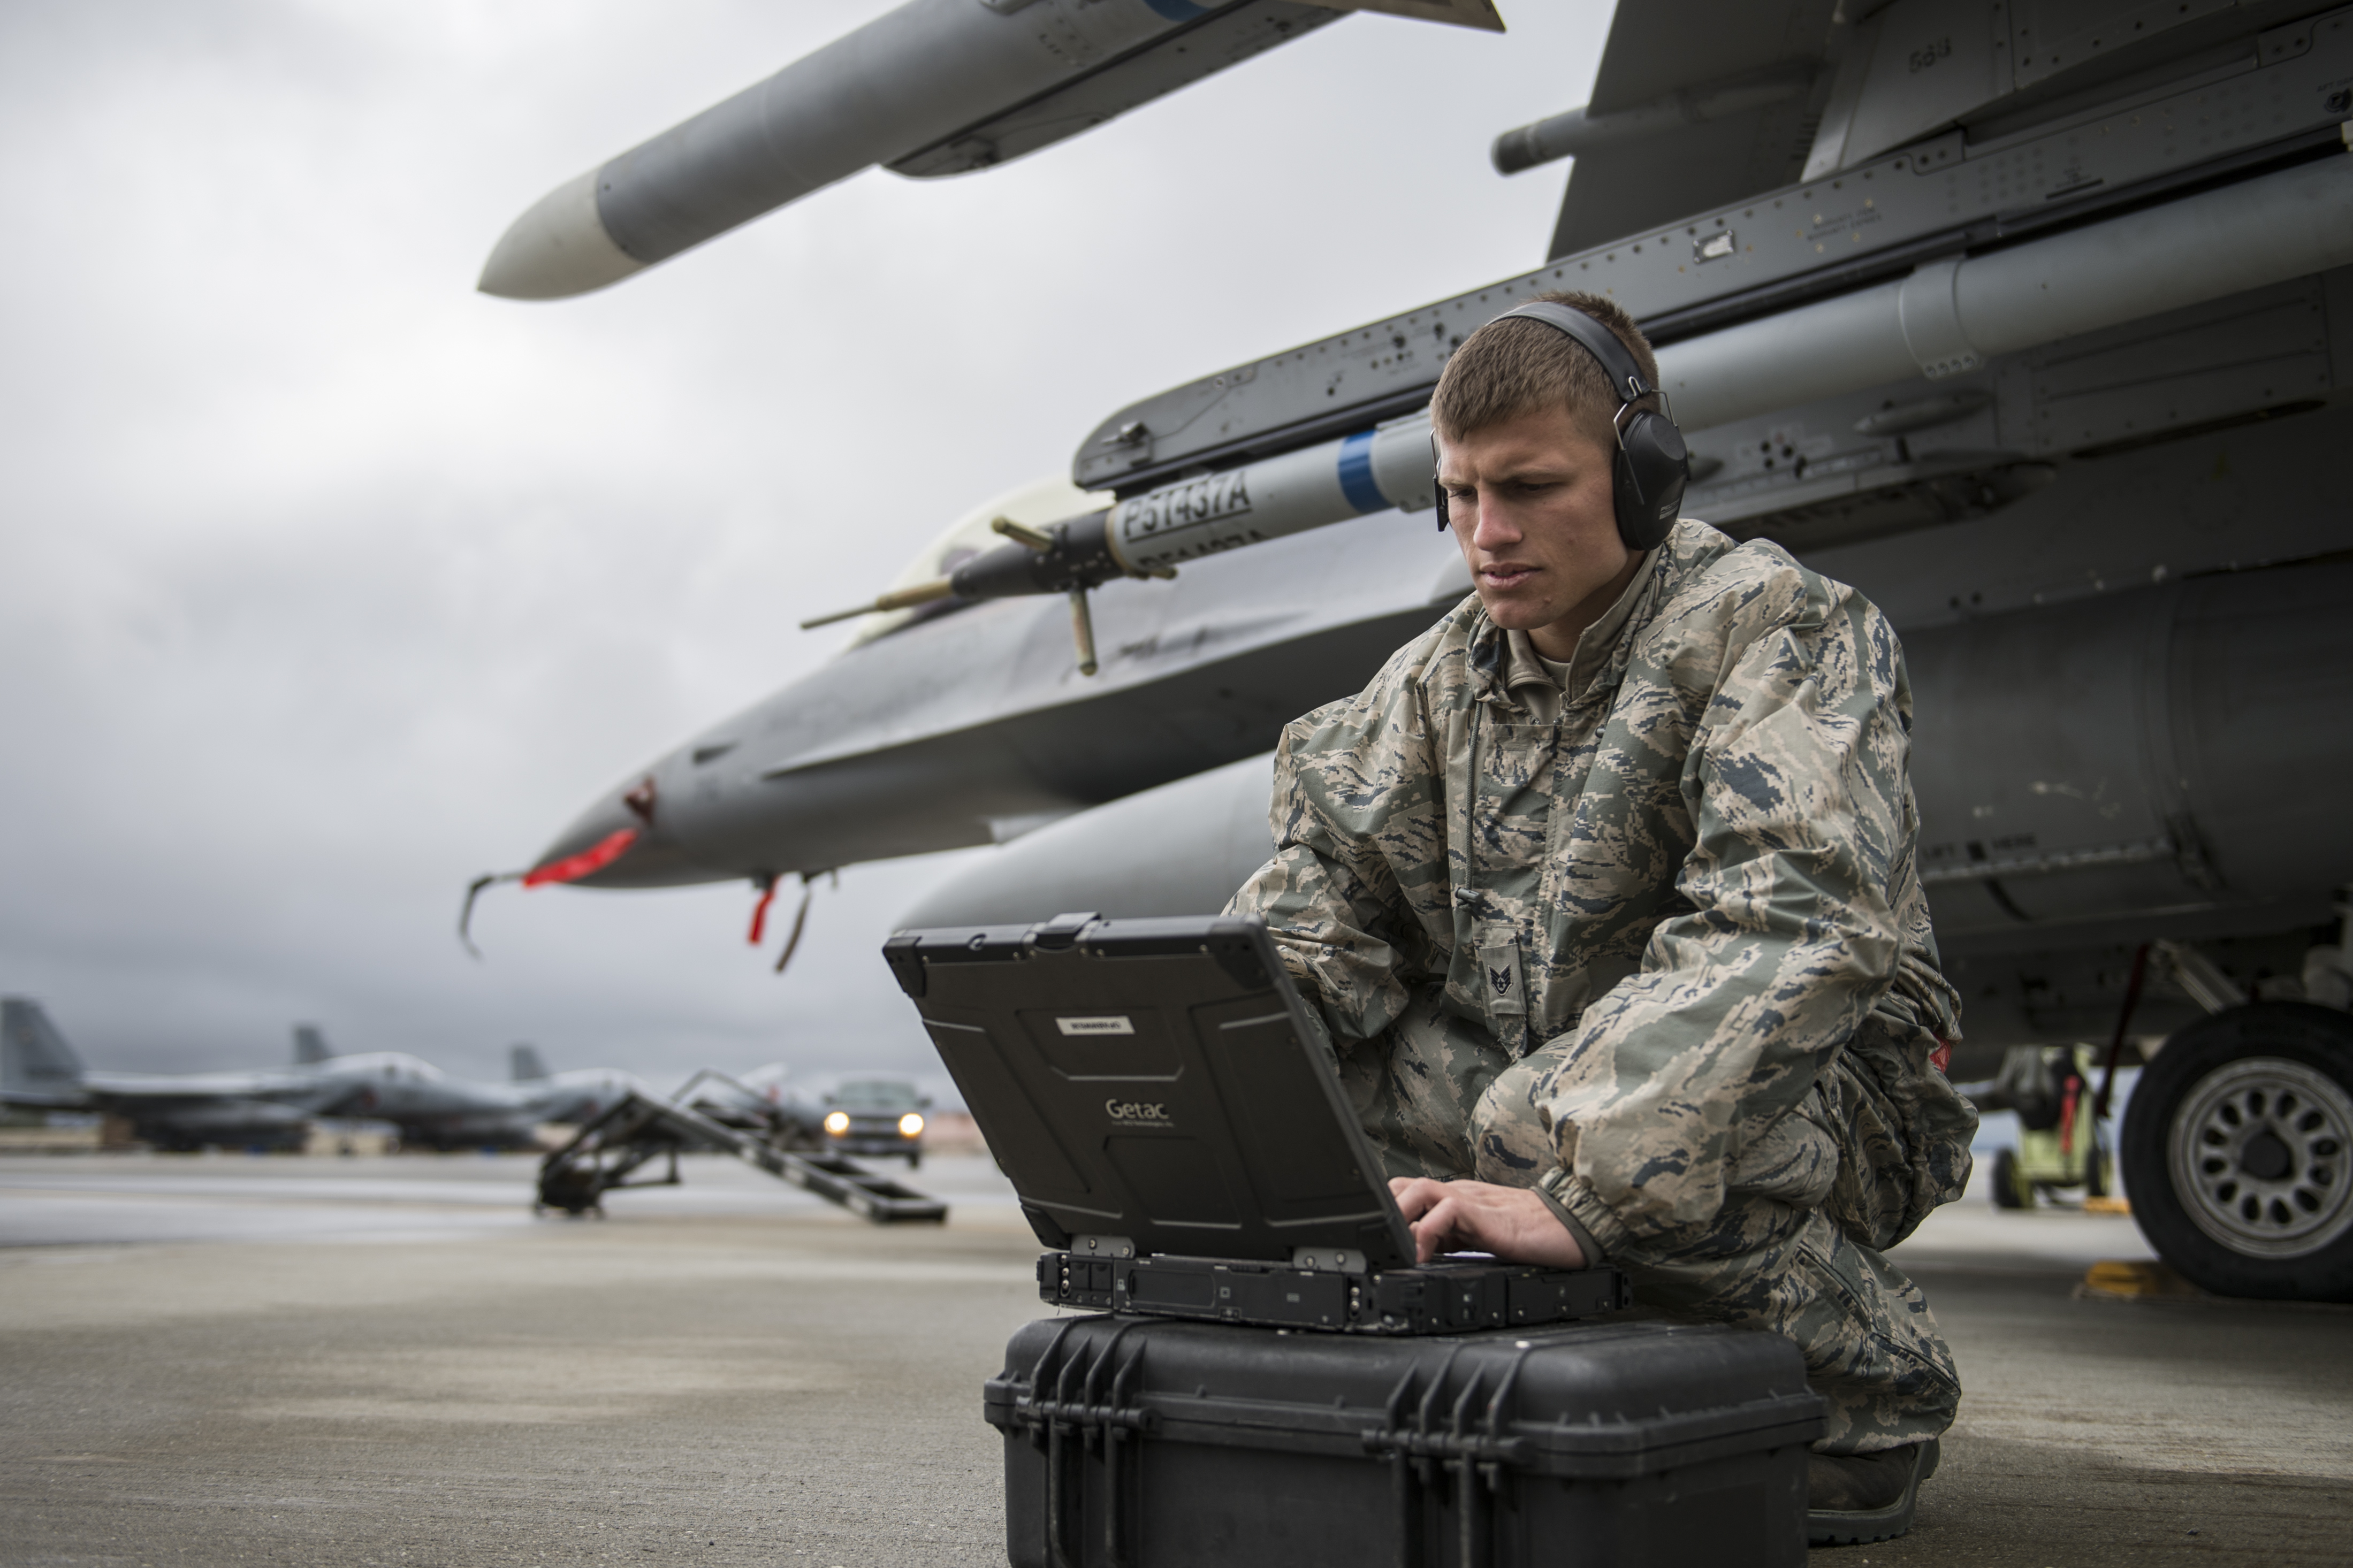 Air Force Member using SOES